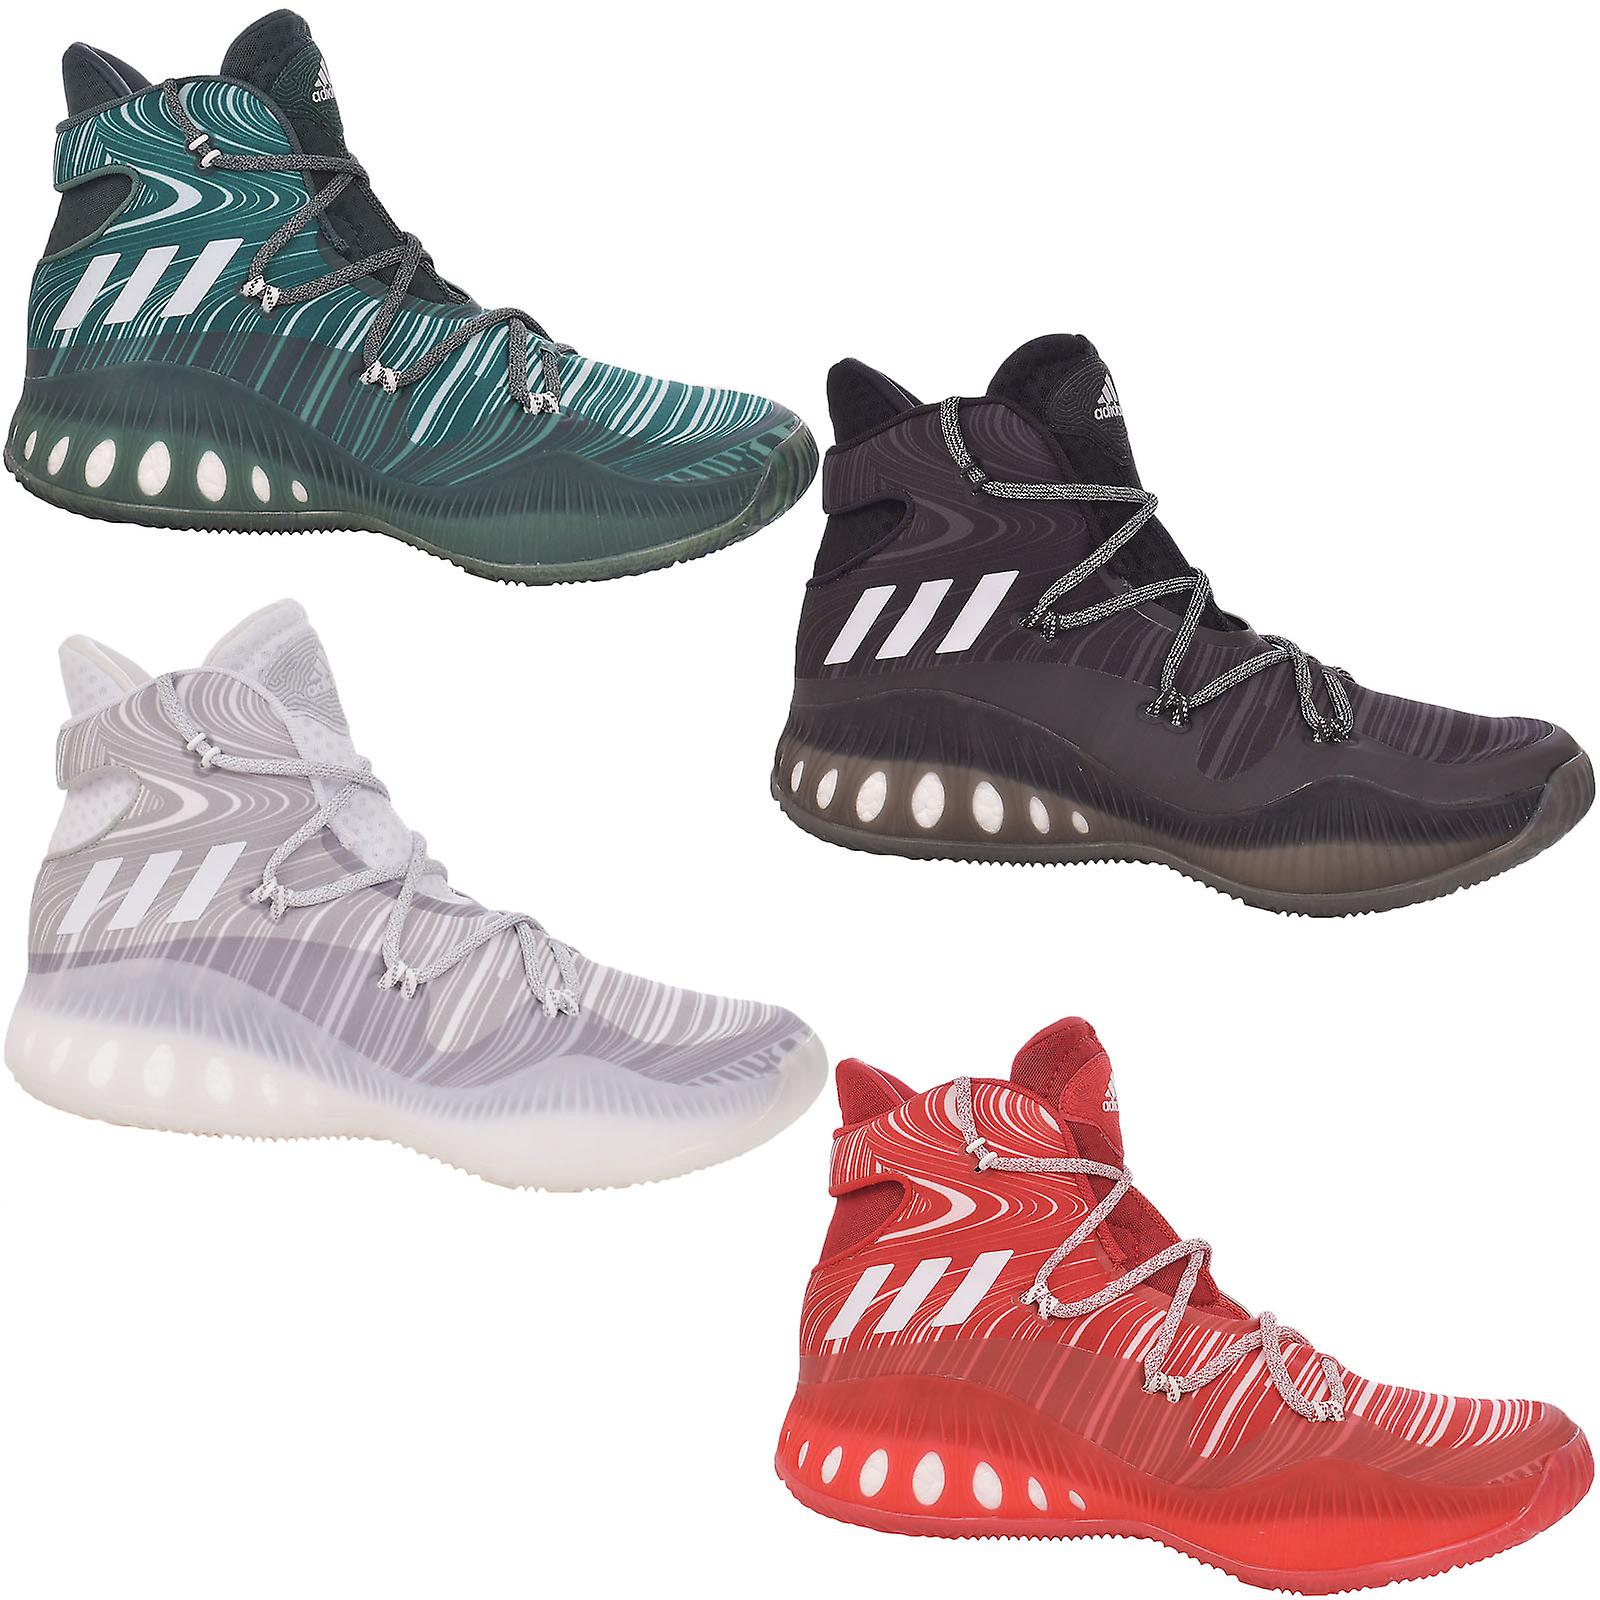 check out 7e943 82048 adidas Performance Mens Crazy Explosive Basketball Trainers Training Shoes